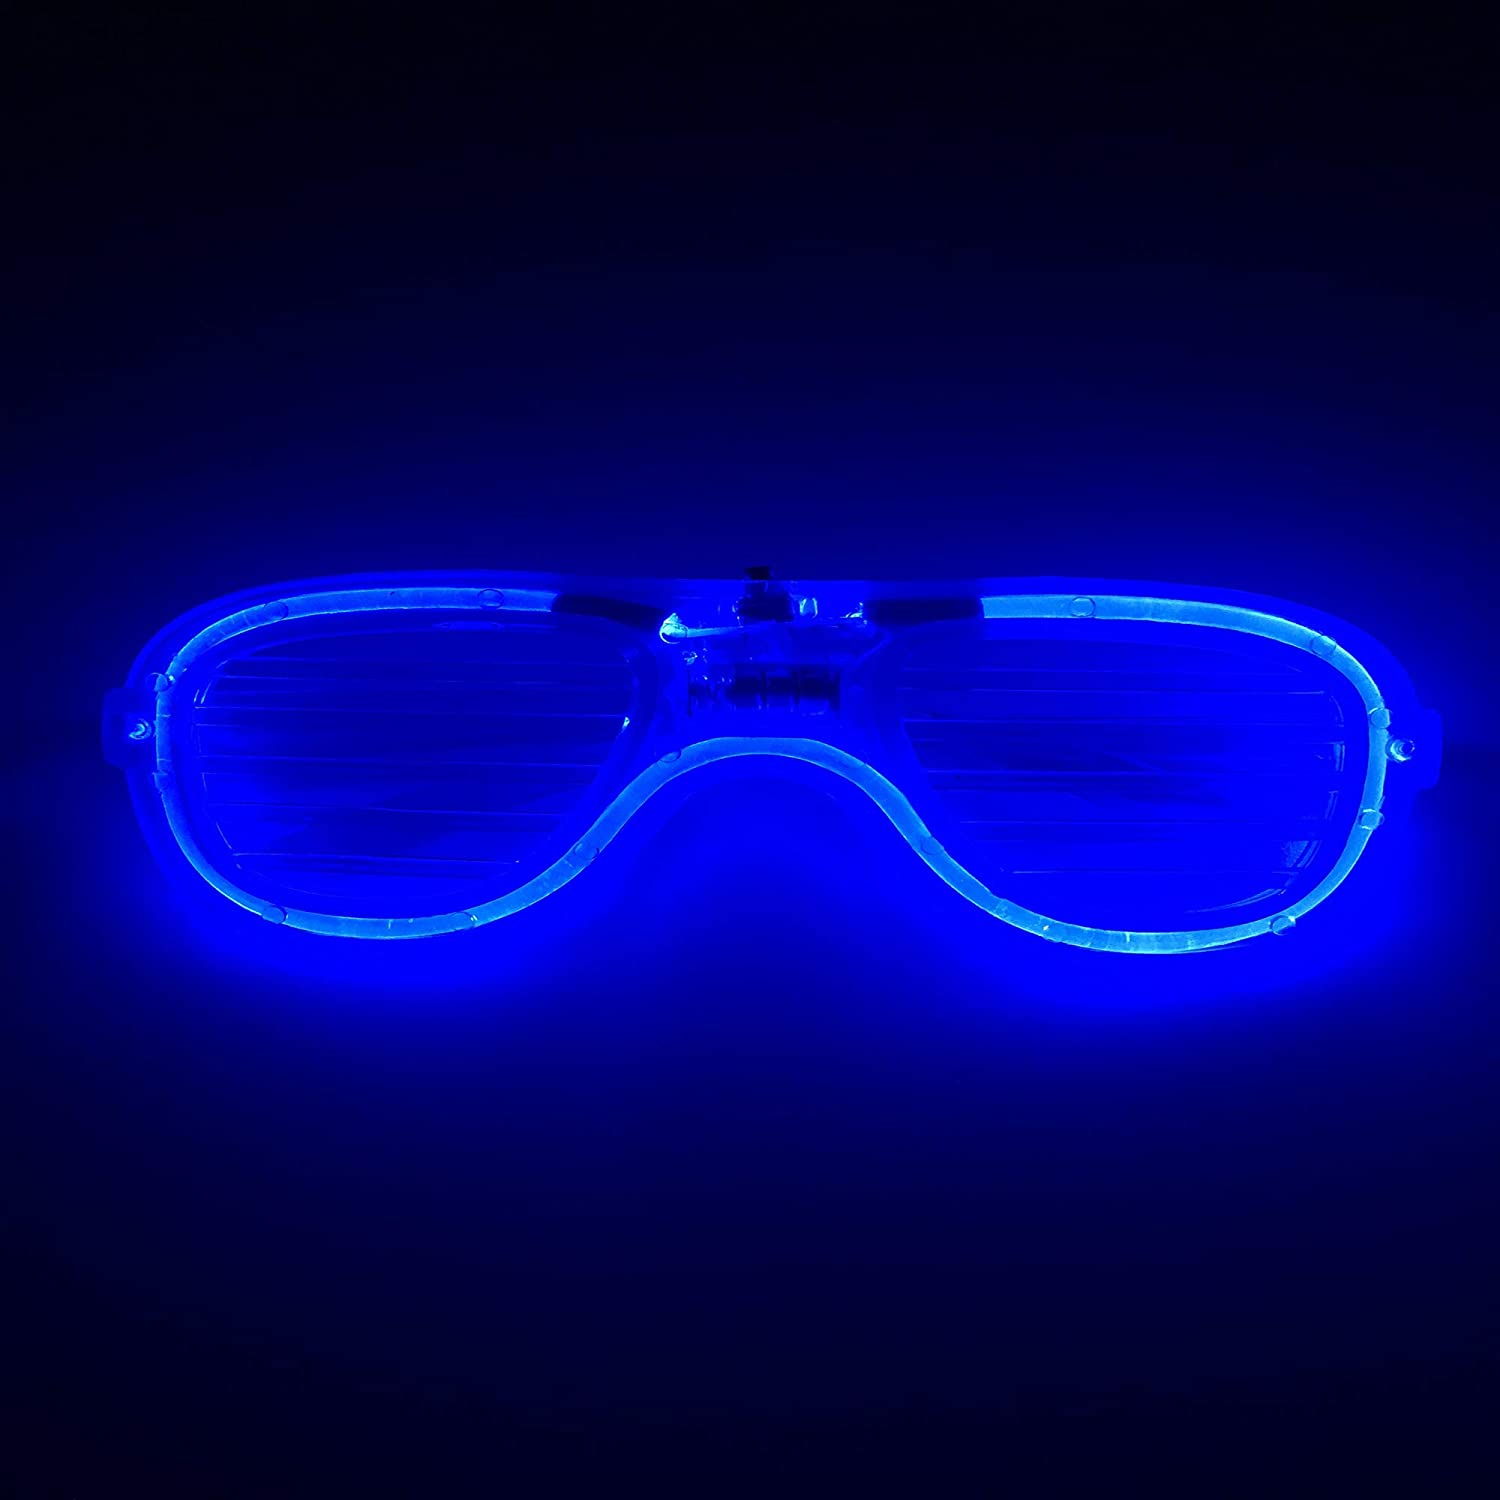 Ithonest led Glasses Party Bulk,led Glasses Focus 3 Modes Glow in The Dark,Neon Lights Flashing Rave in Festival Party and Birthday//Set of 12 Glasses with 2 Packs Backup Batteries.